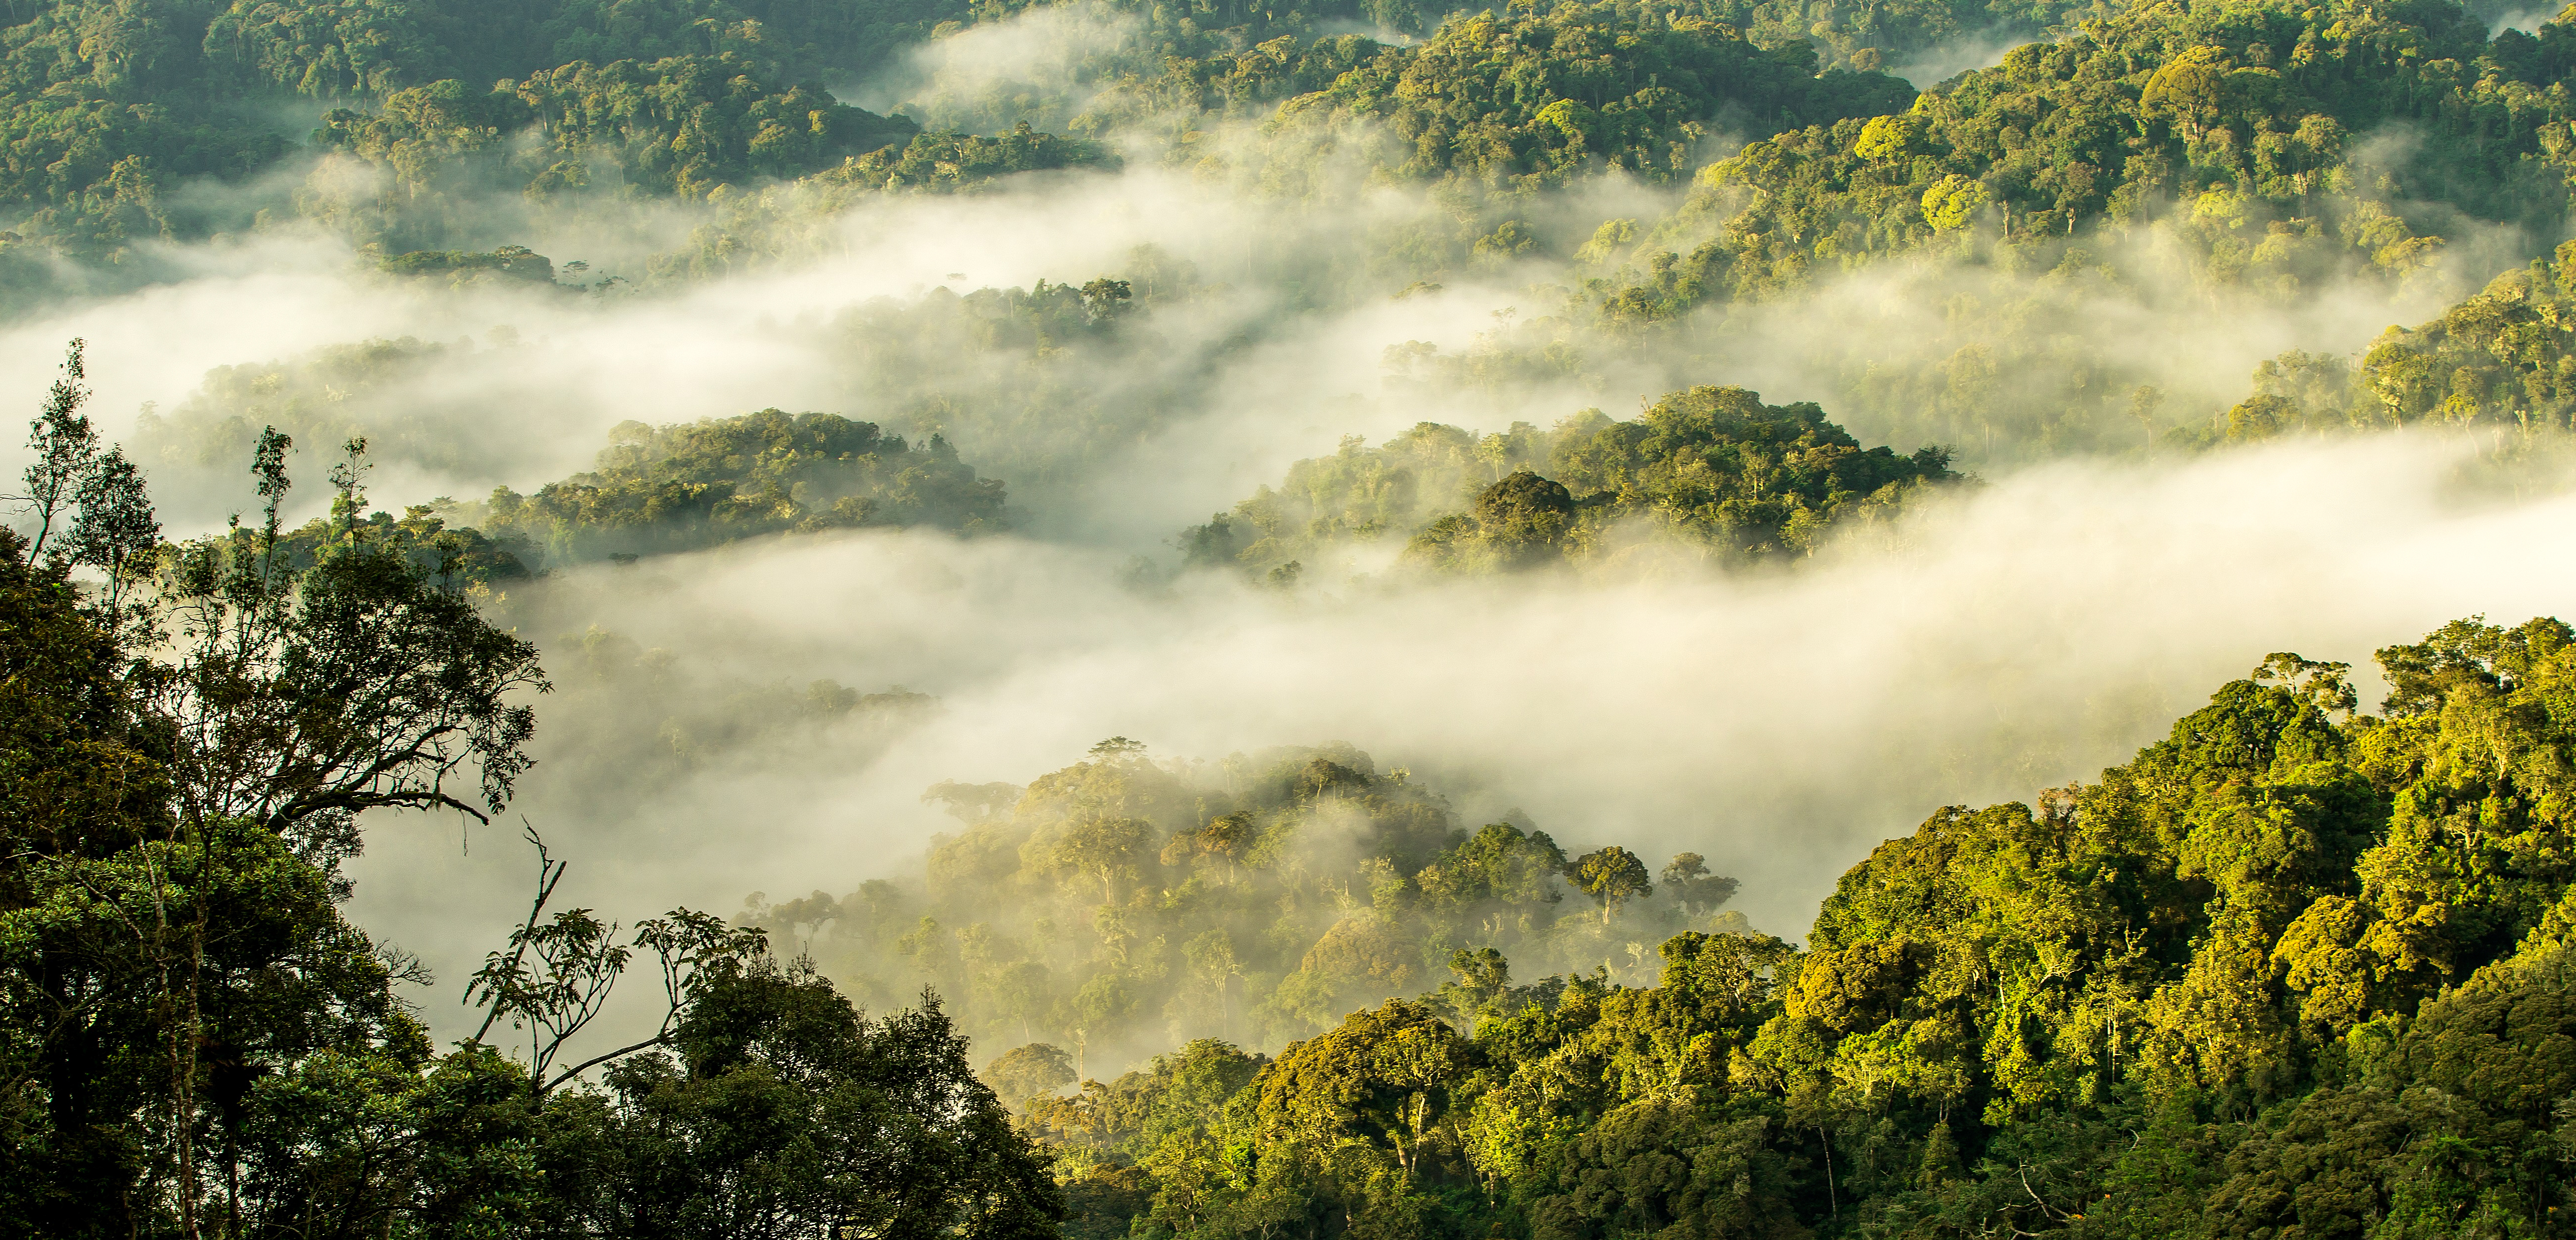 nyungwe-forest-morning-mist